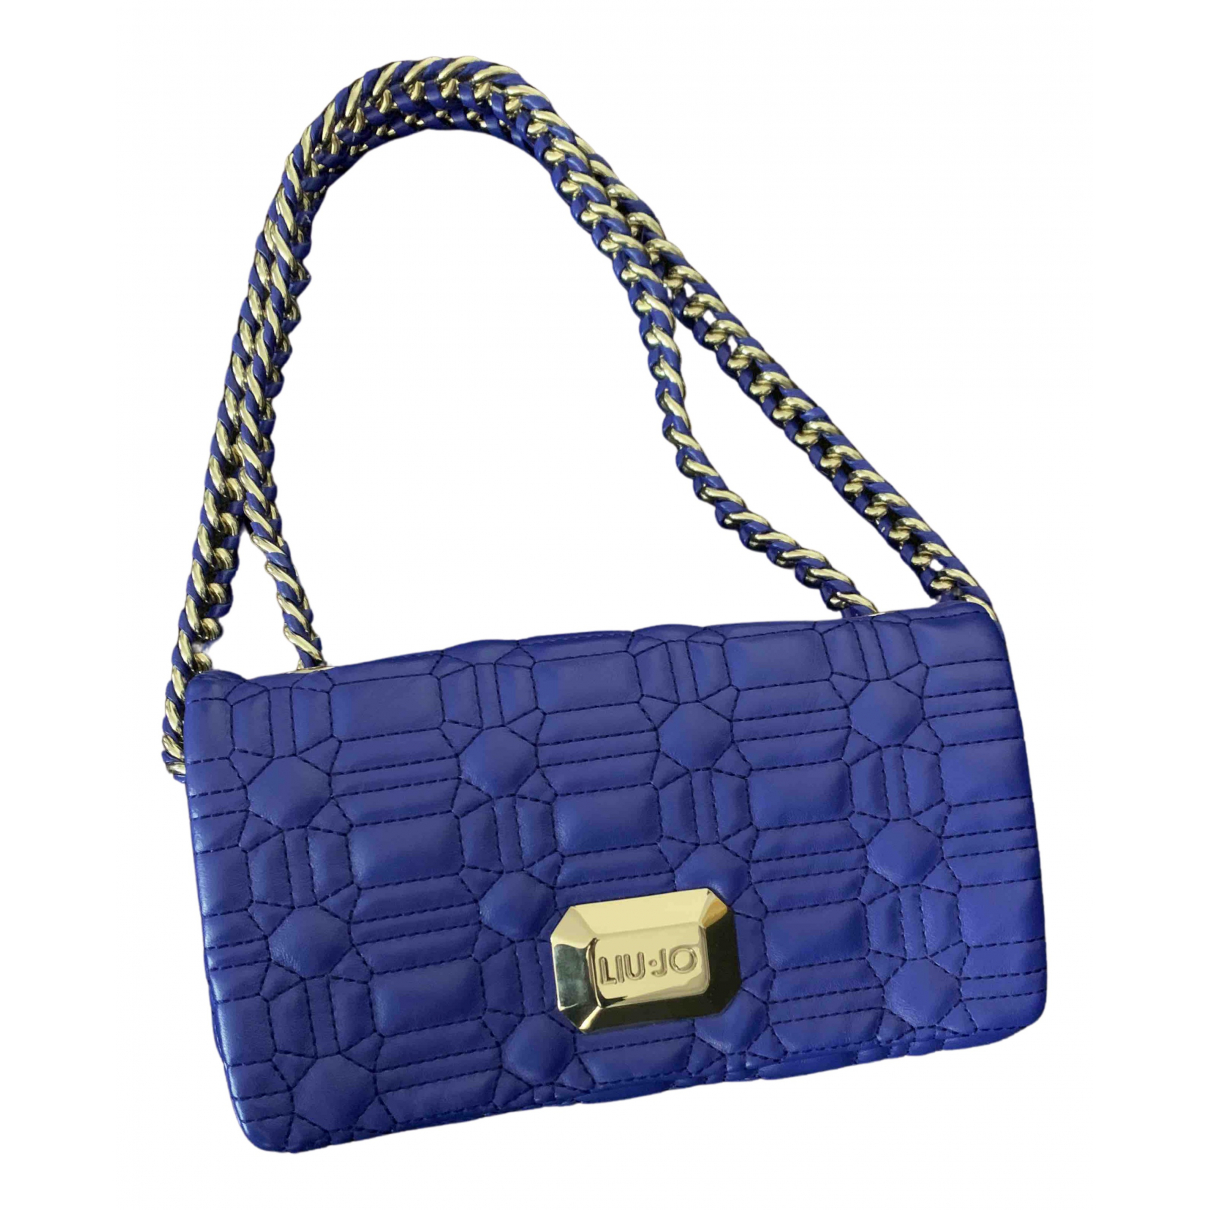 Liu.jo \N Clutch in  Blau Leder